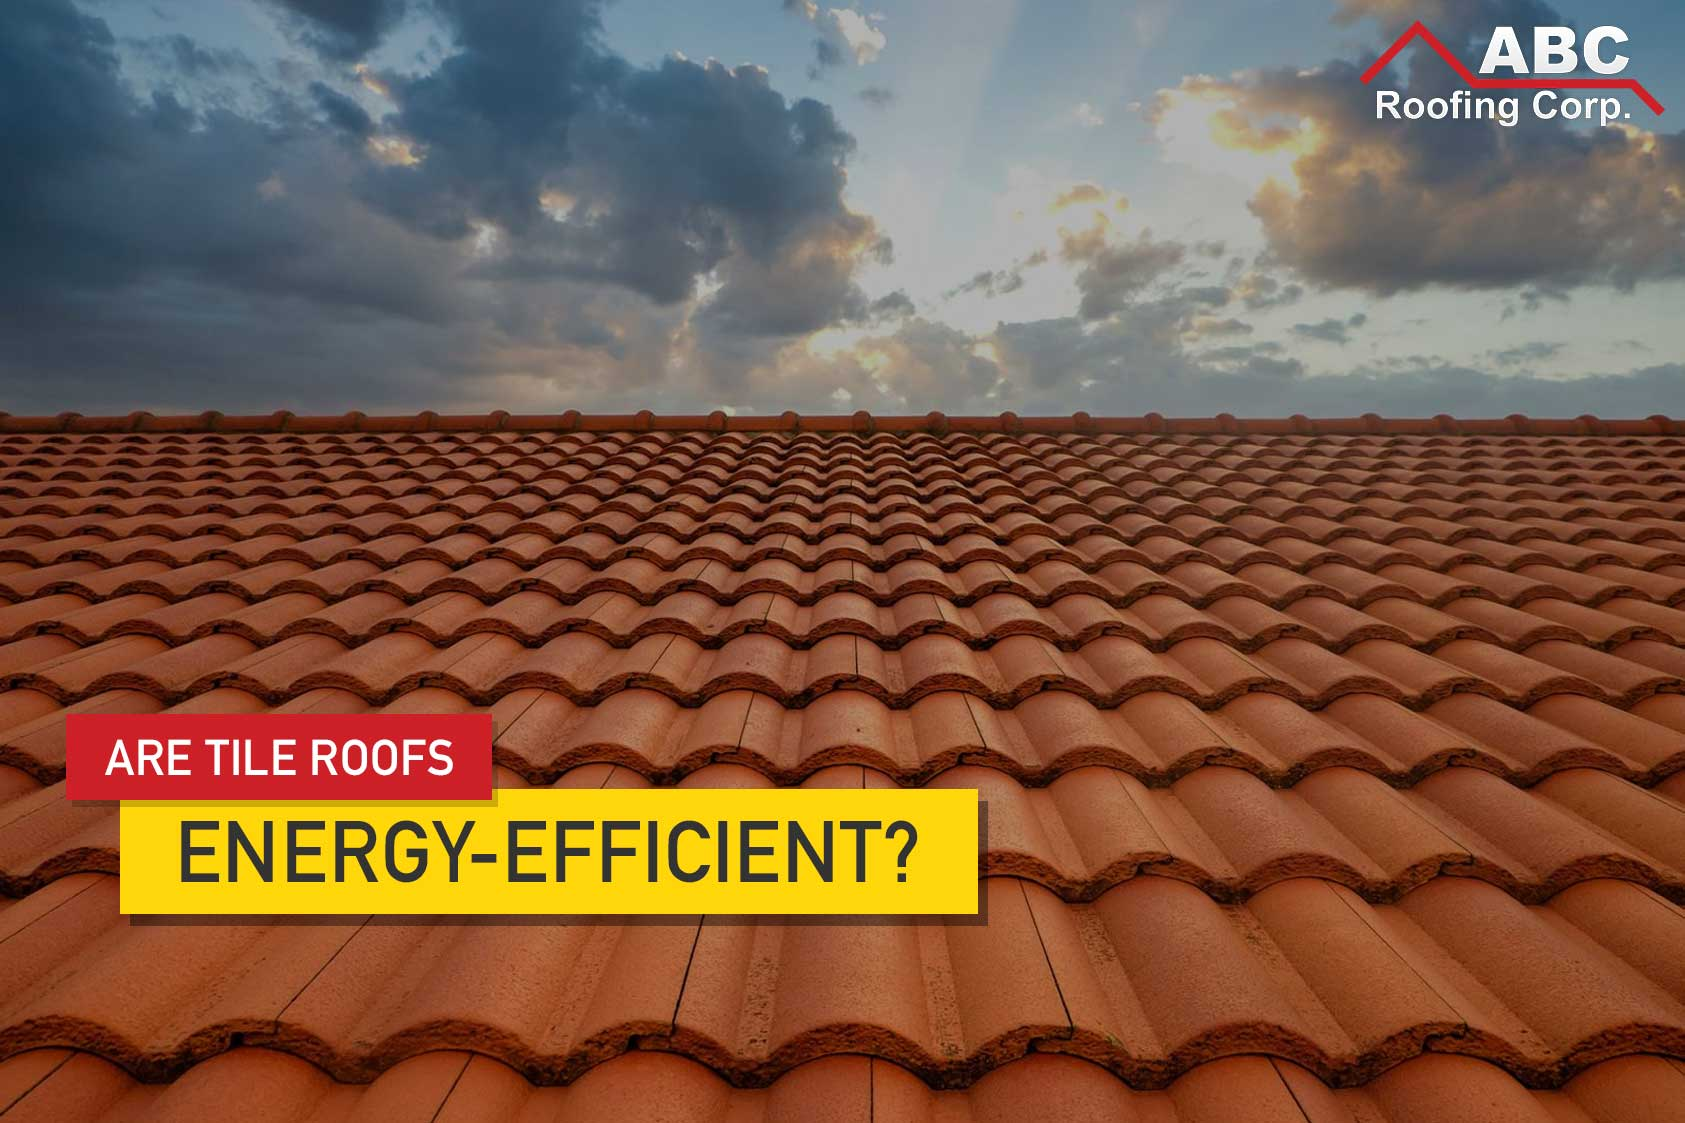 Tile Roofs Energy-Efficient